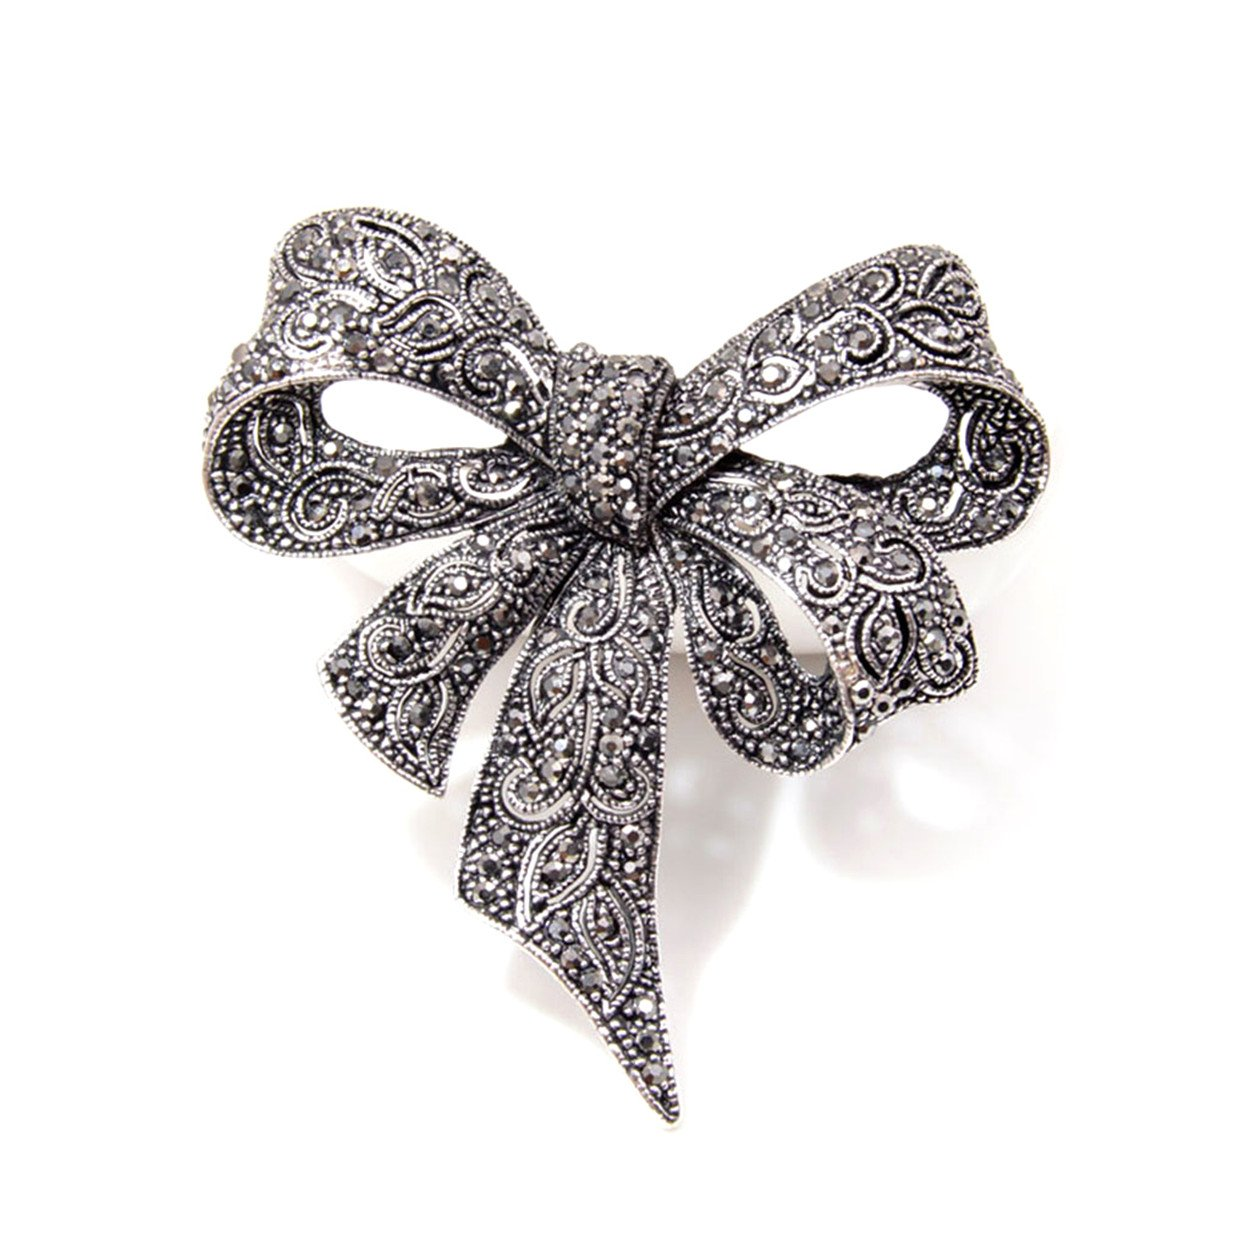 EJY Antique Silver Crystal Bow Knot Brooches Pins Christmas Wedding Gift for Women 88_Store